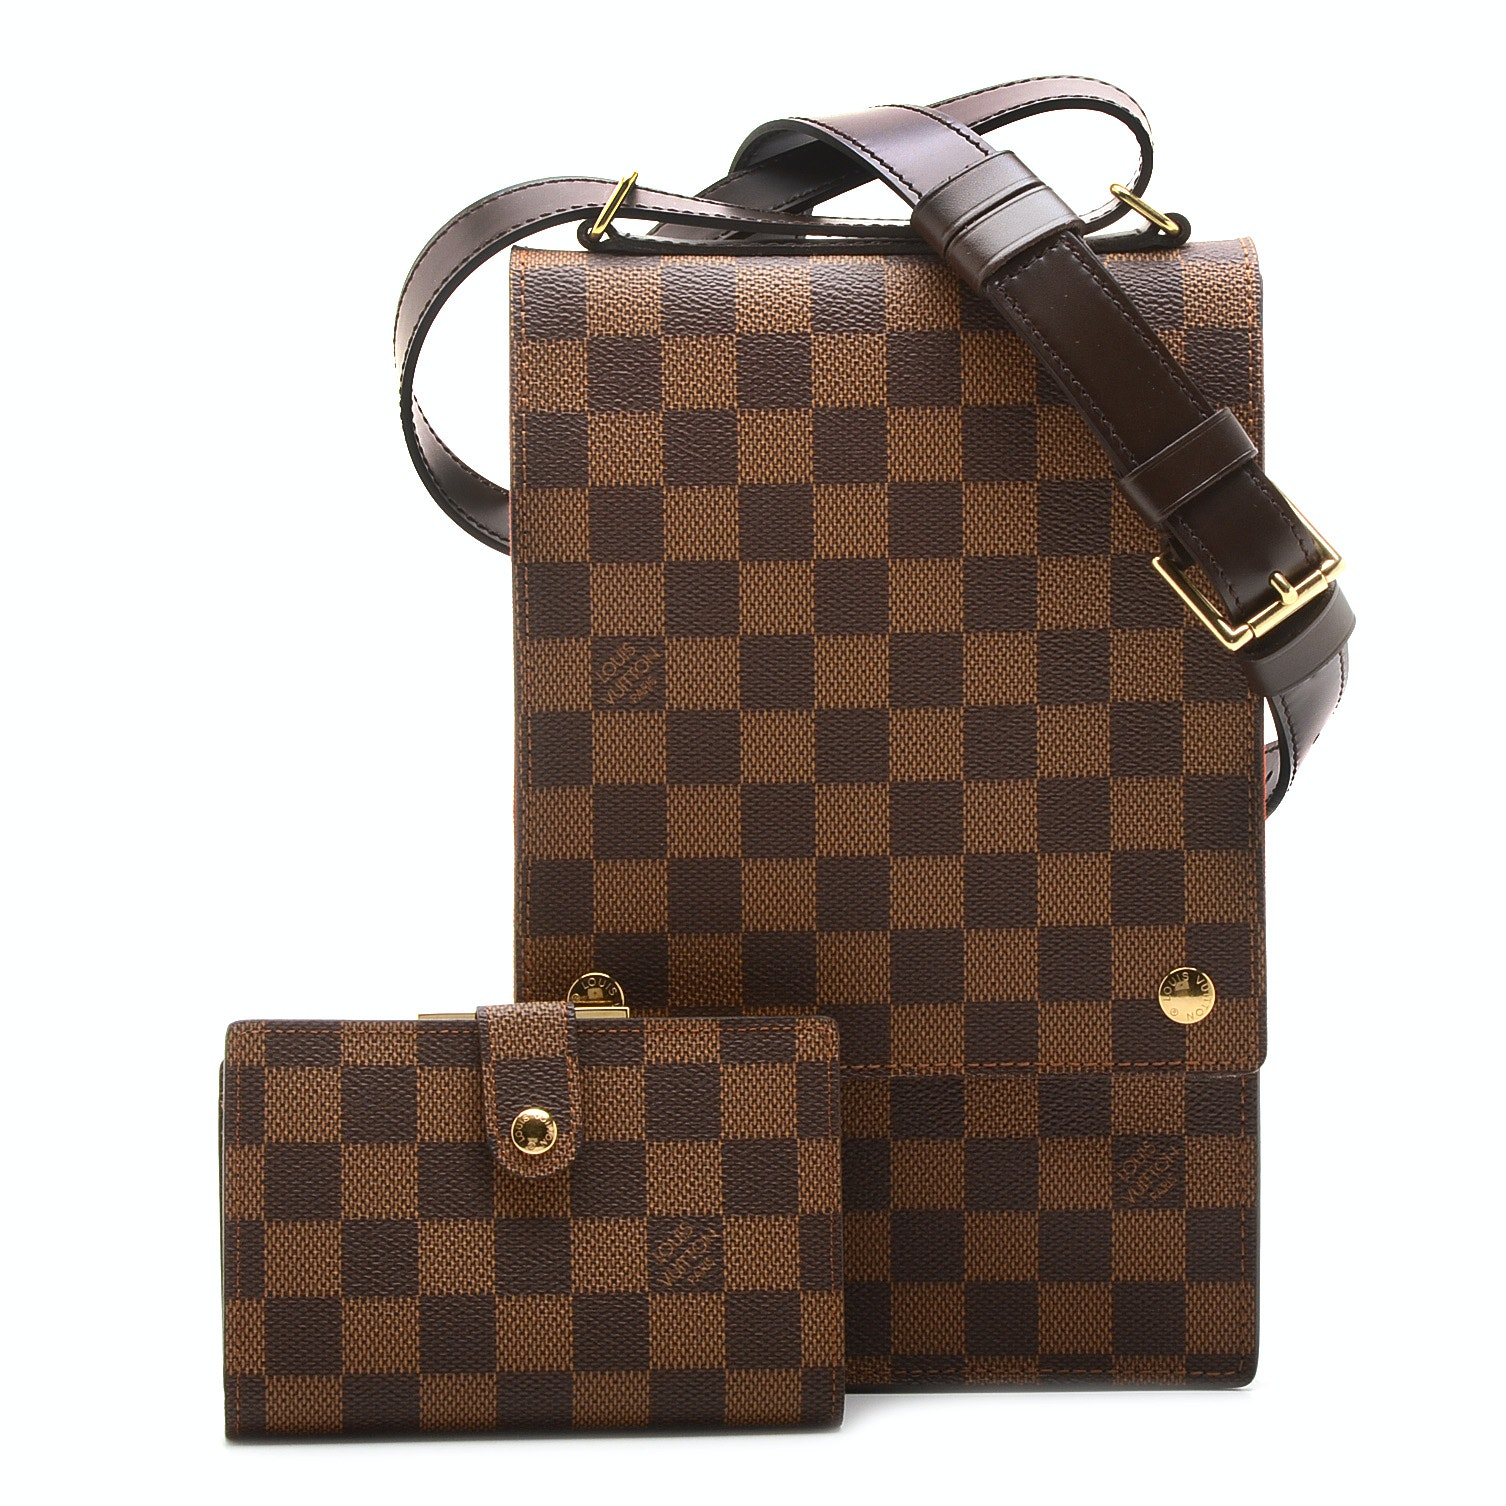 Louis Vuitton Damier Ebène Crossbody Bag and Wallet